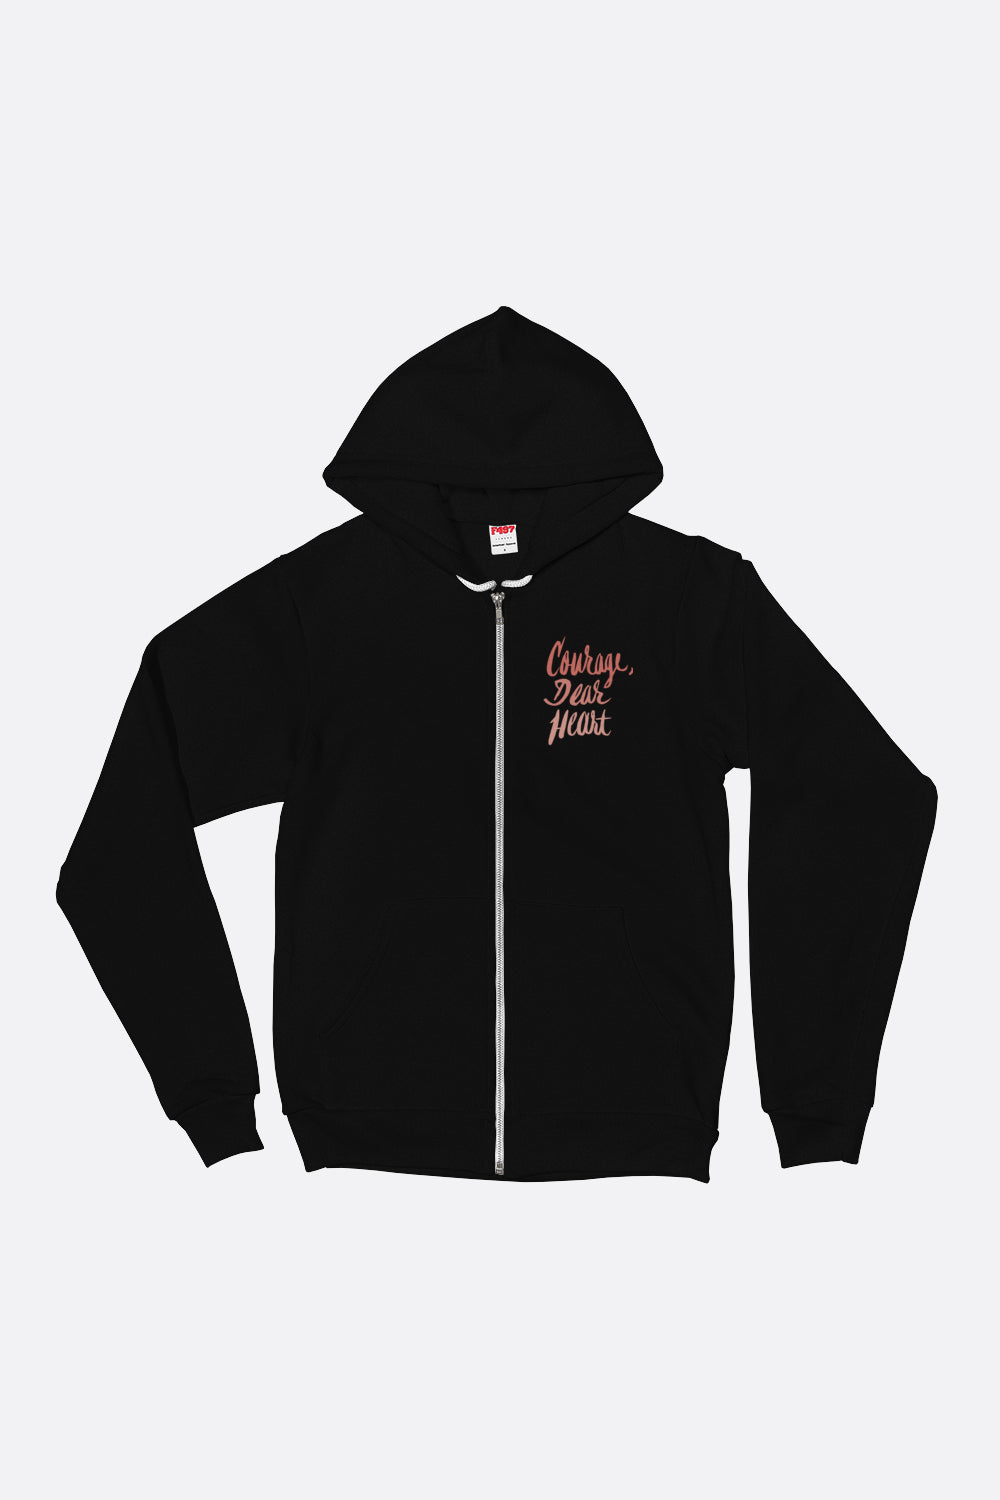 Courage Dear Heart Zipper Hoodie